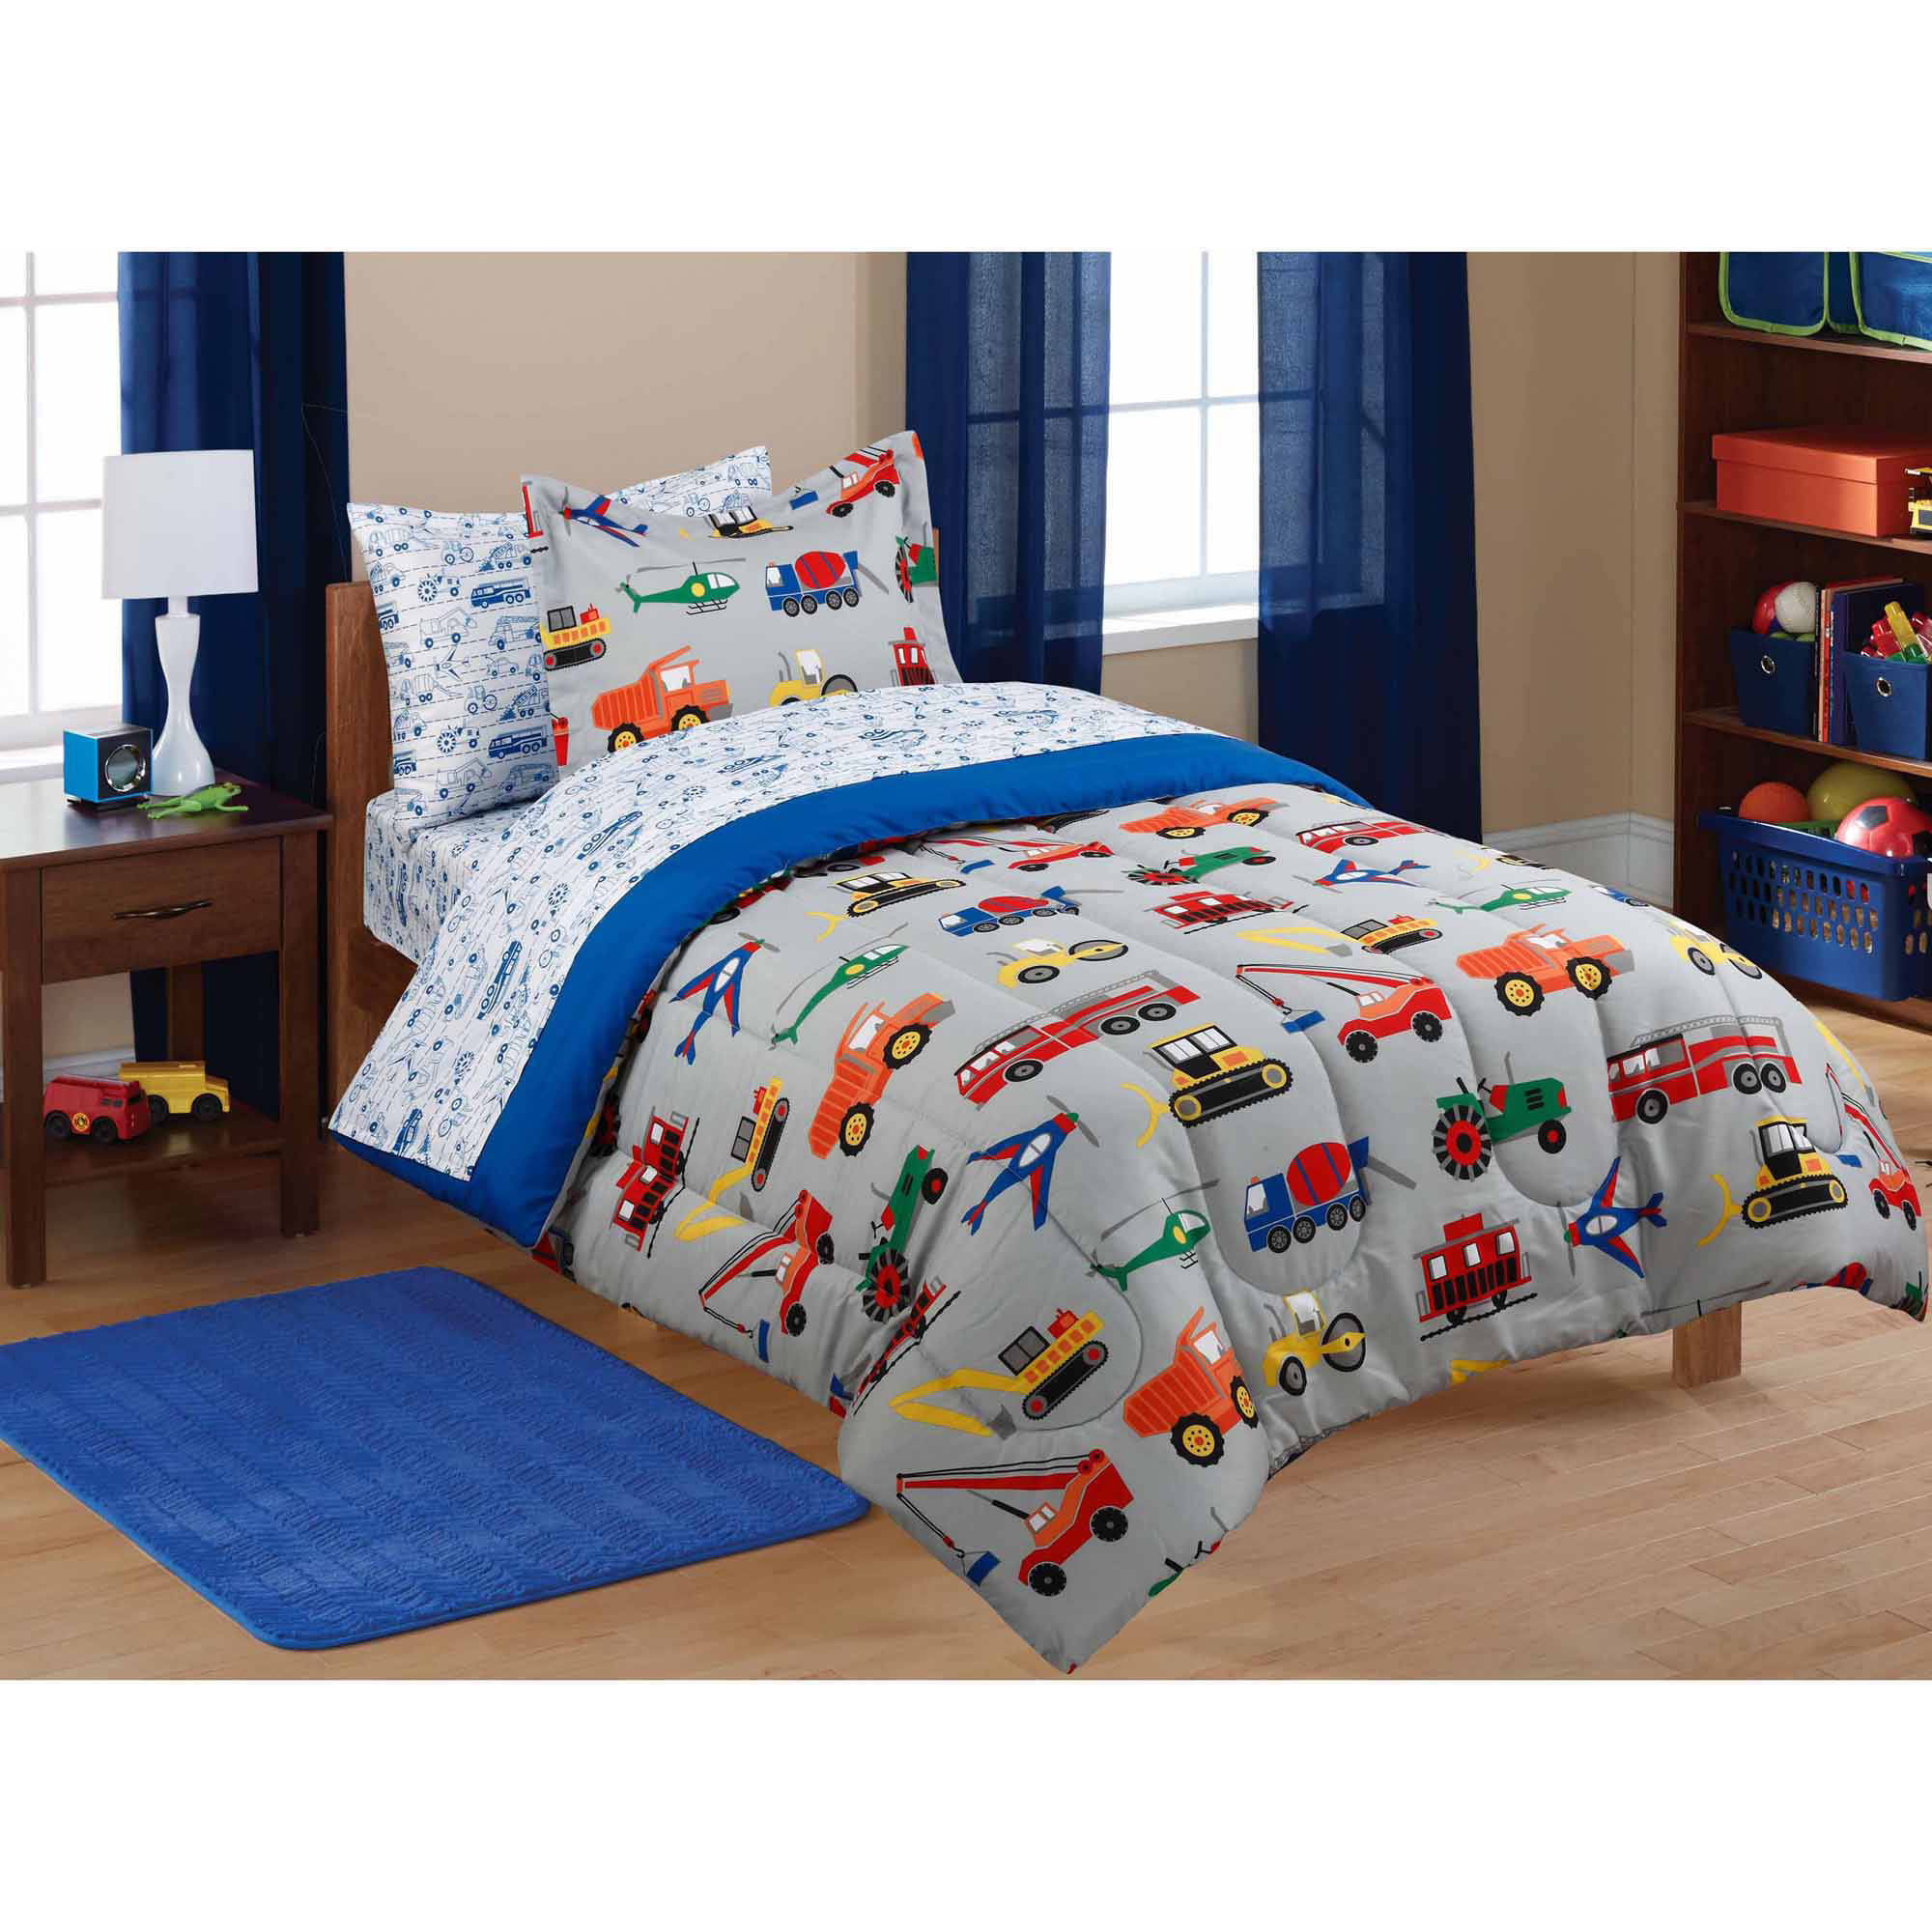 Mainstays Kids Transportation Coordinated Bed in a Bag, 1 Each